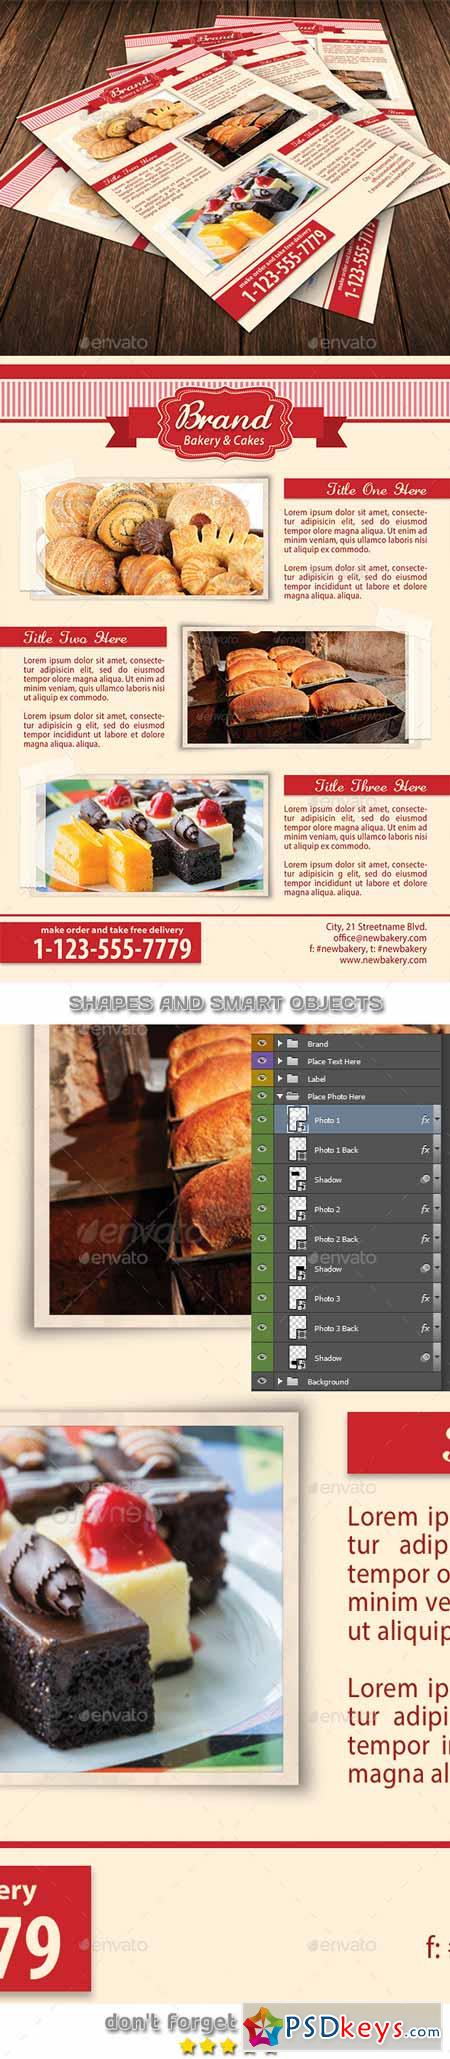 Bakery Food Flyer Template 93 11533259